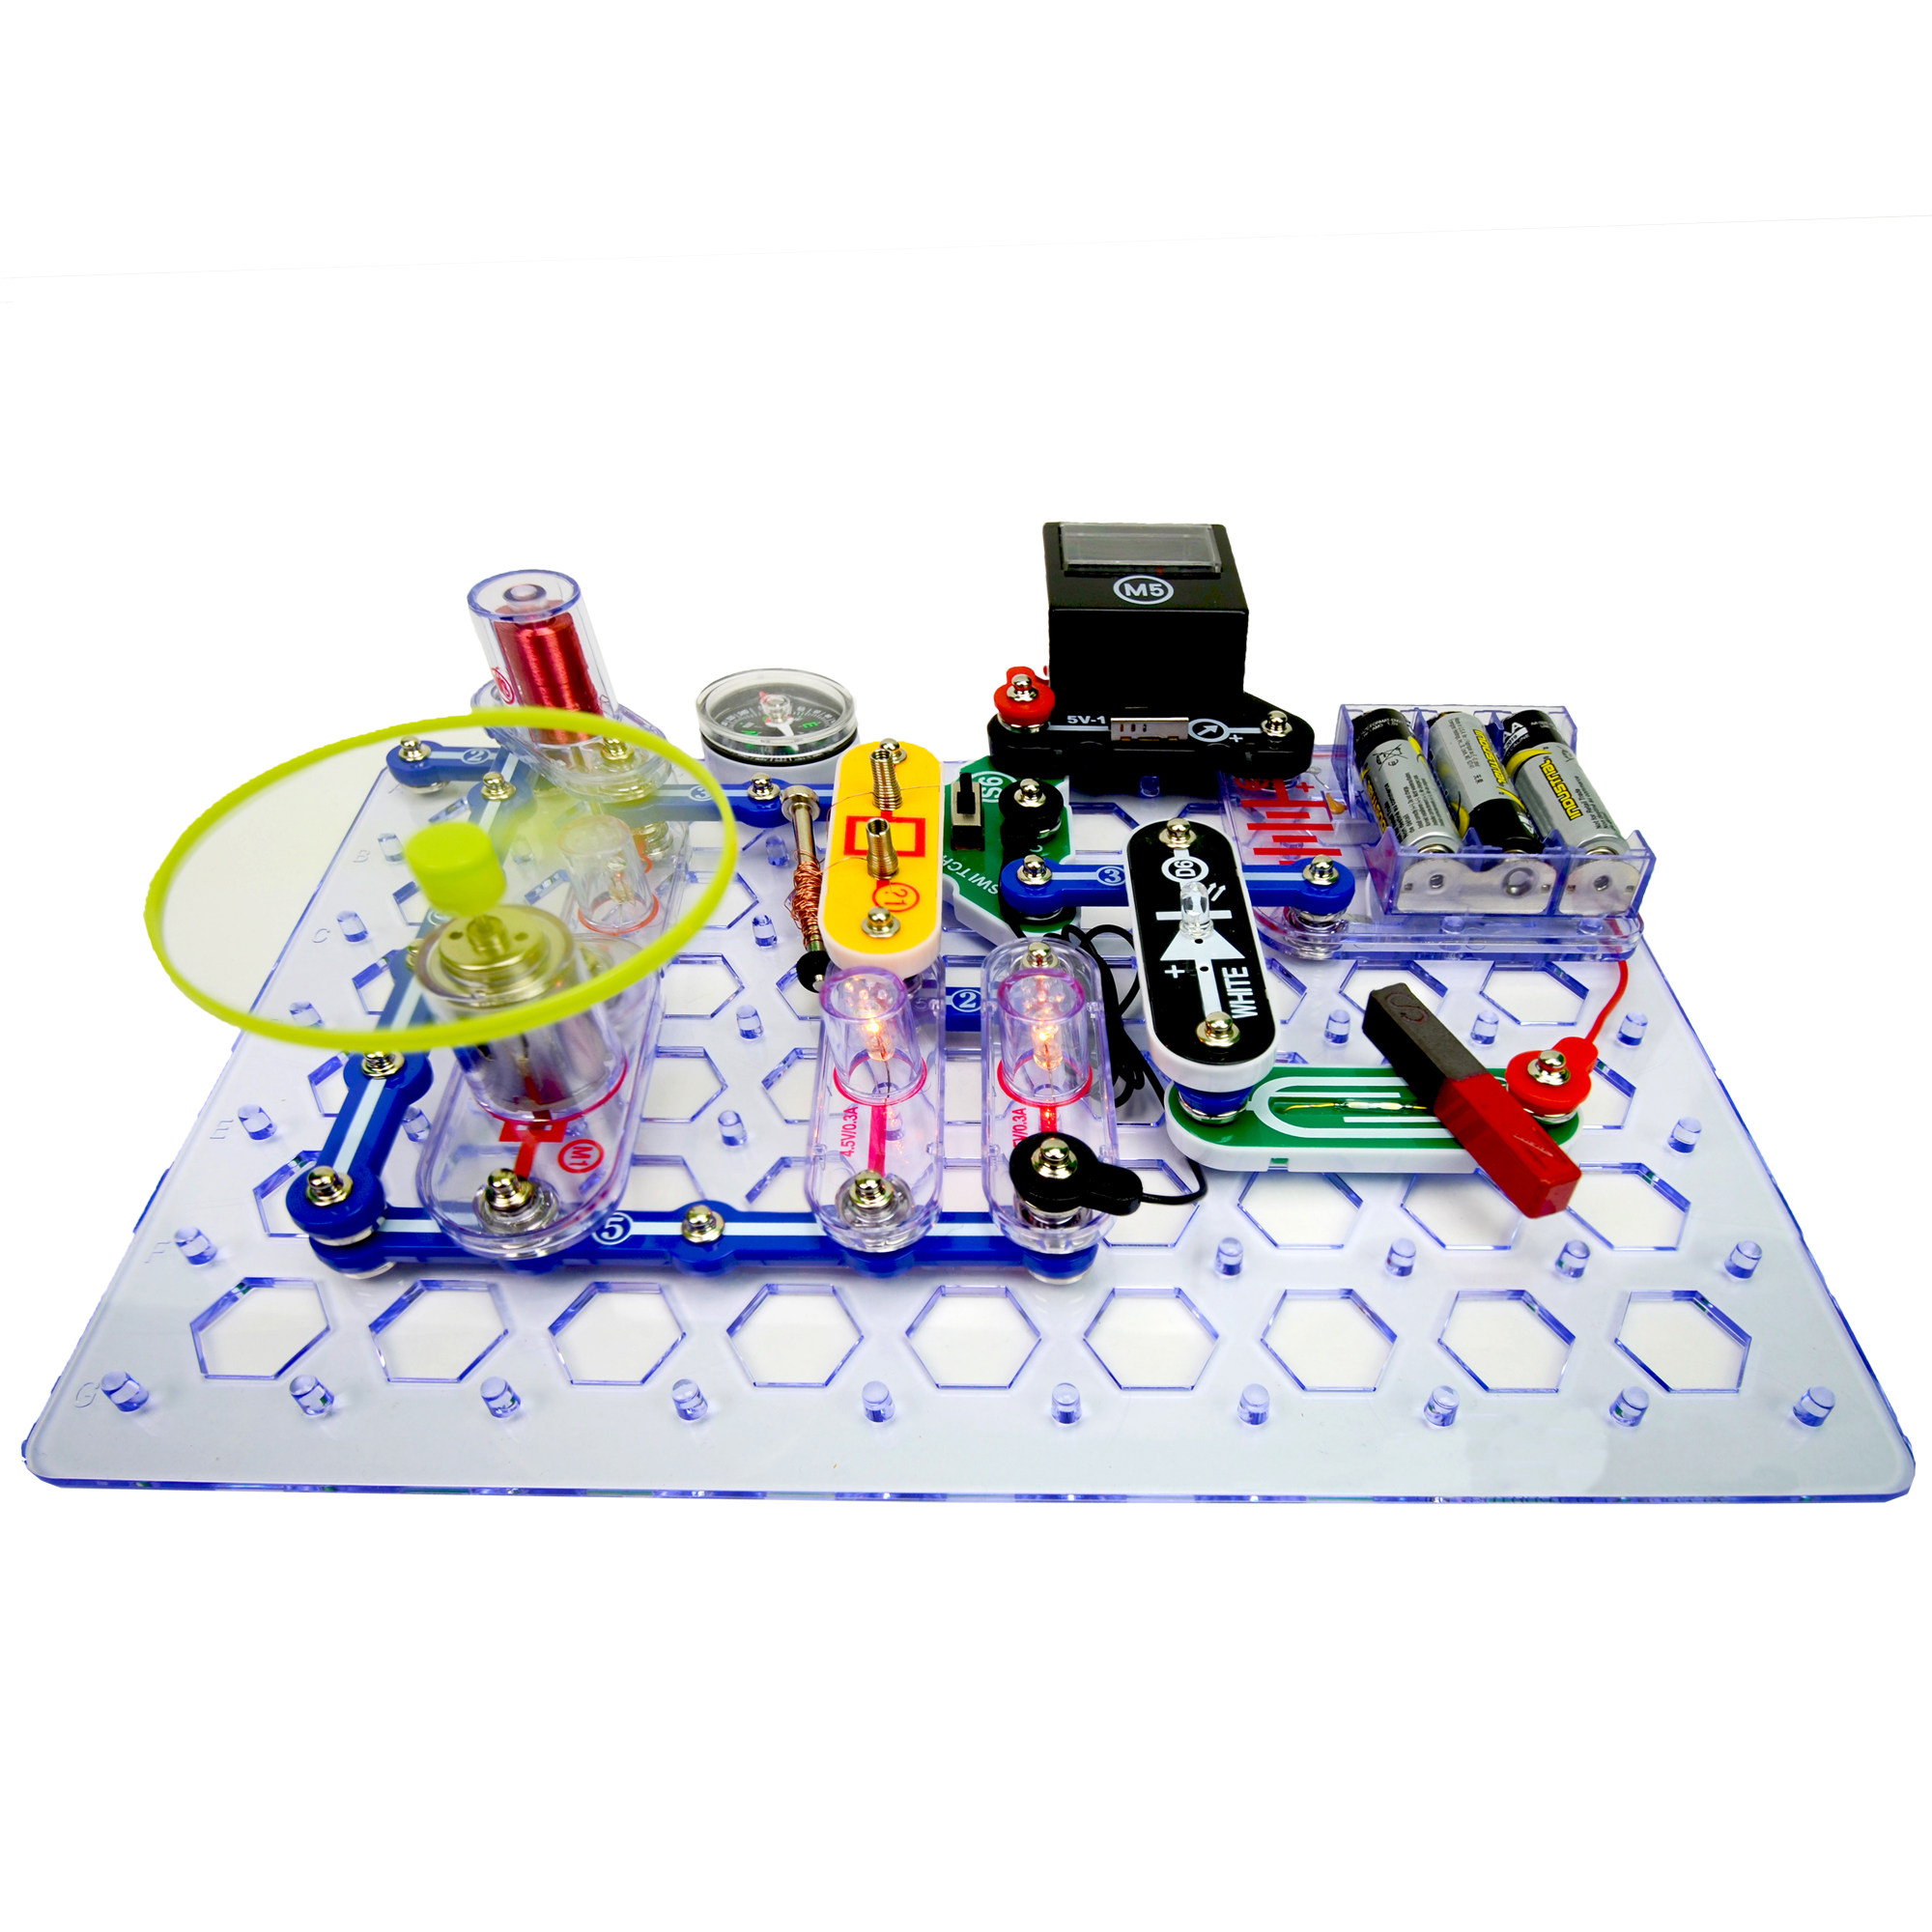 Snap Circuits Stem Elenco R Electronic And Educational Toys Previous Next